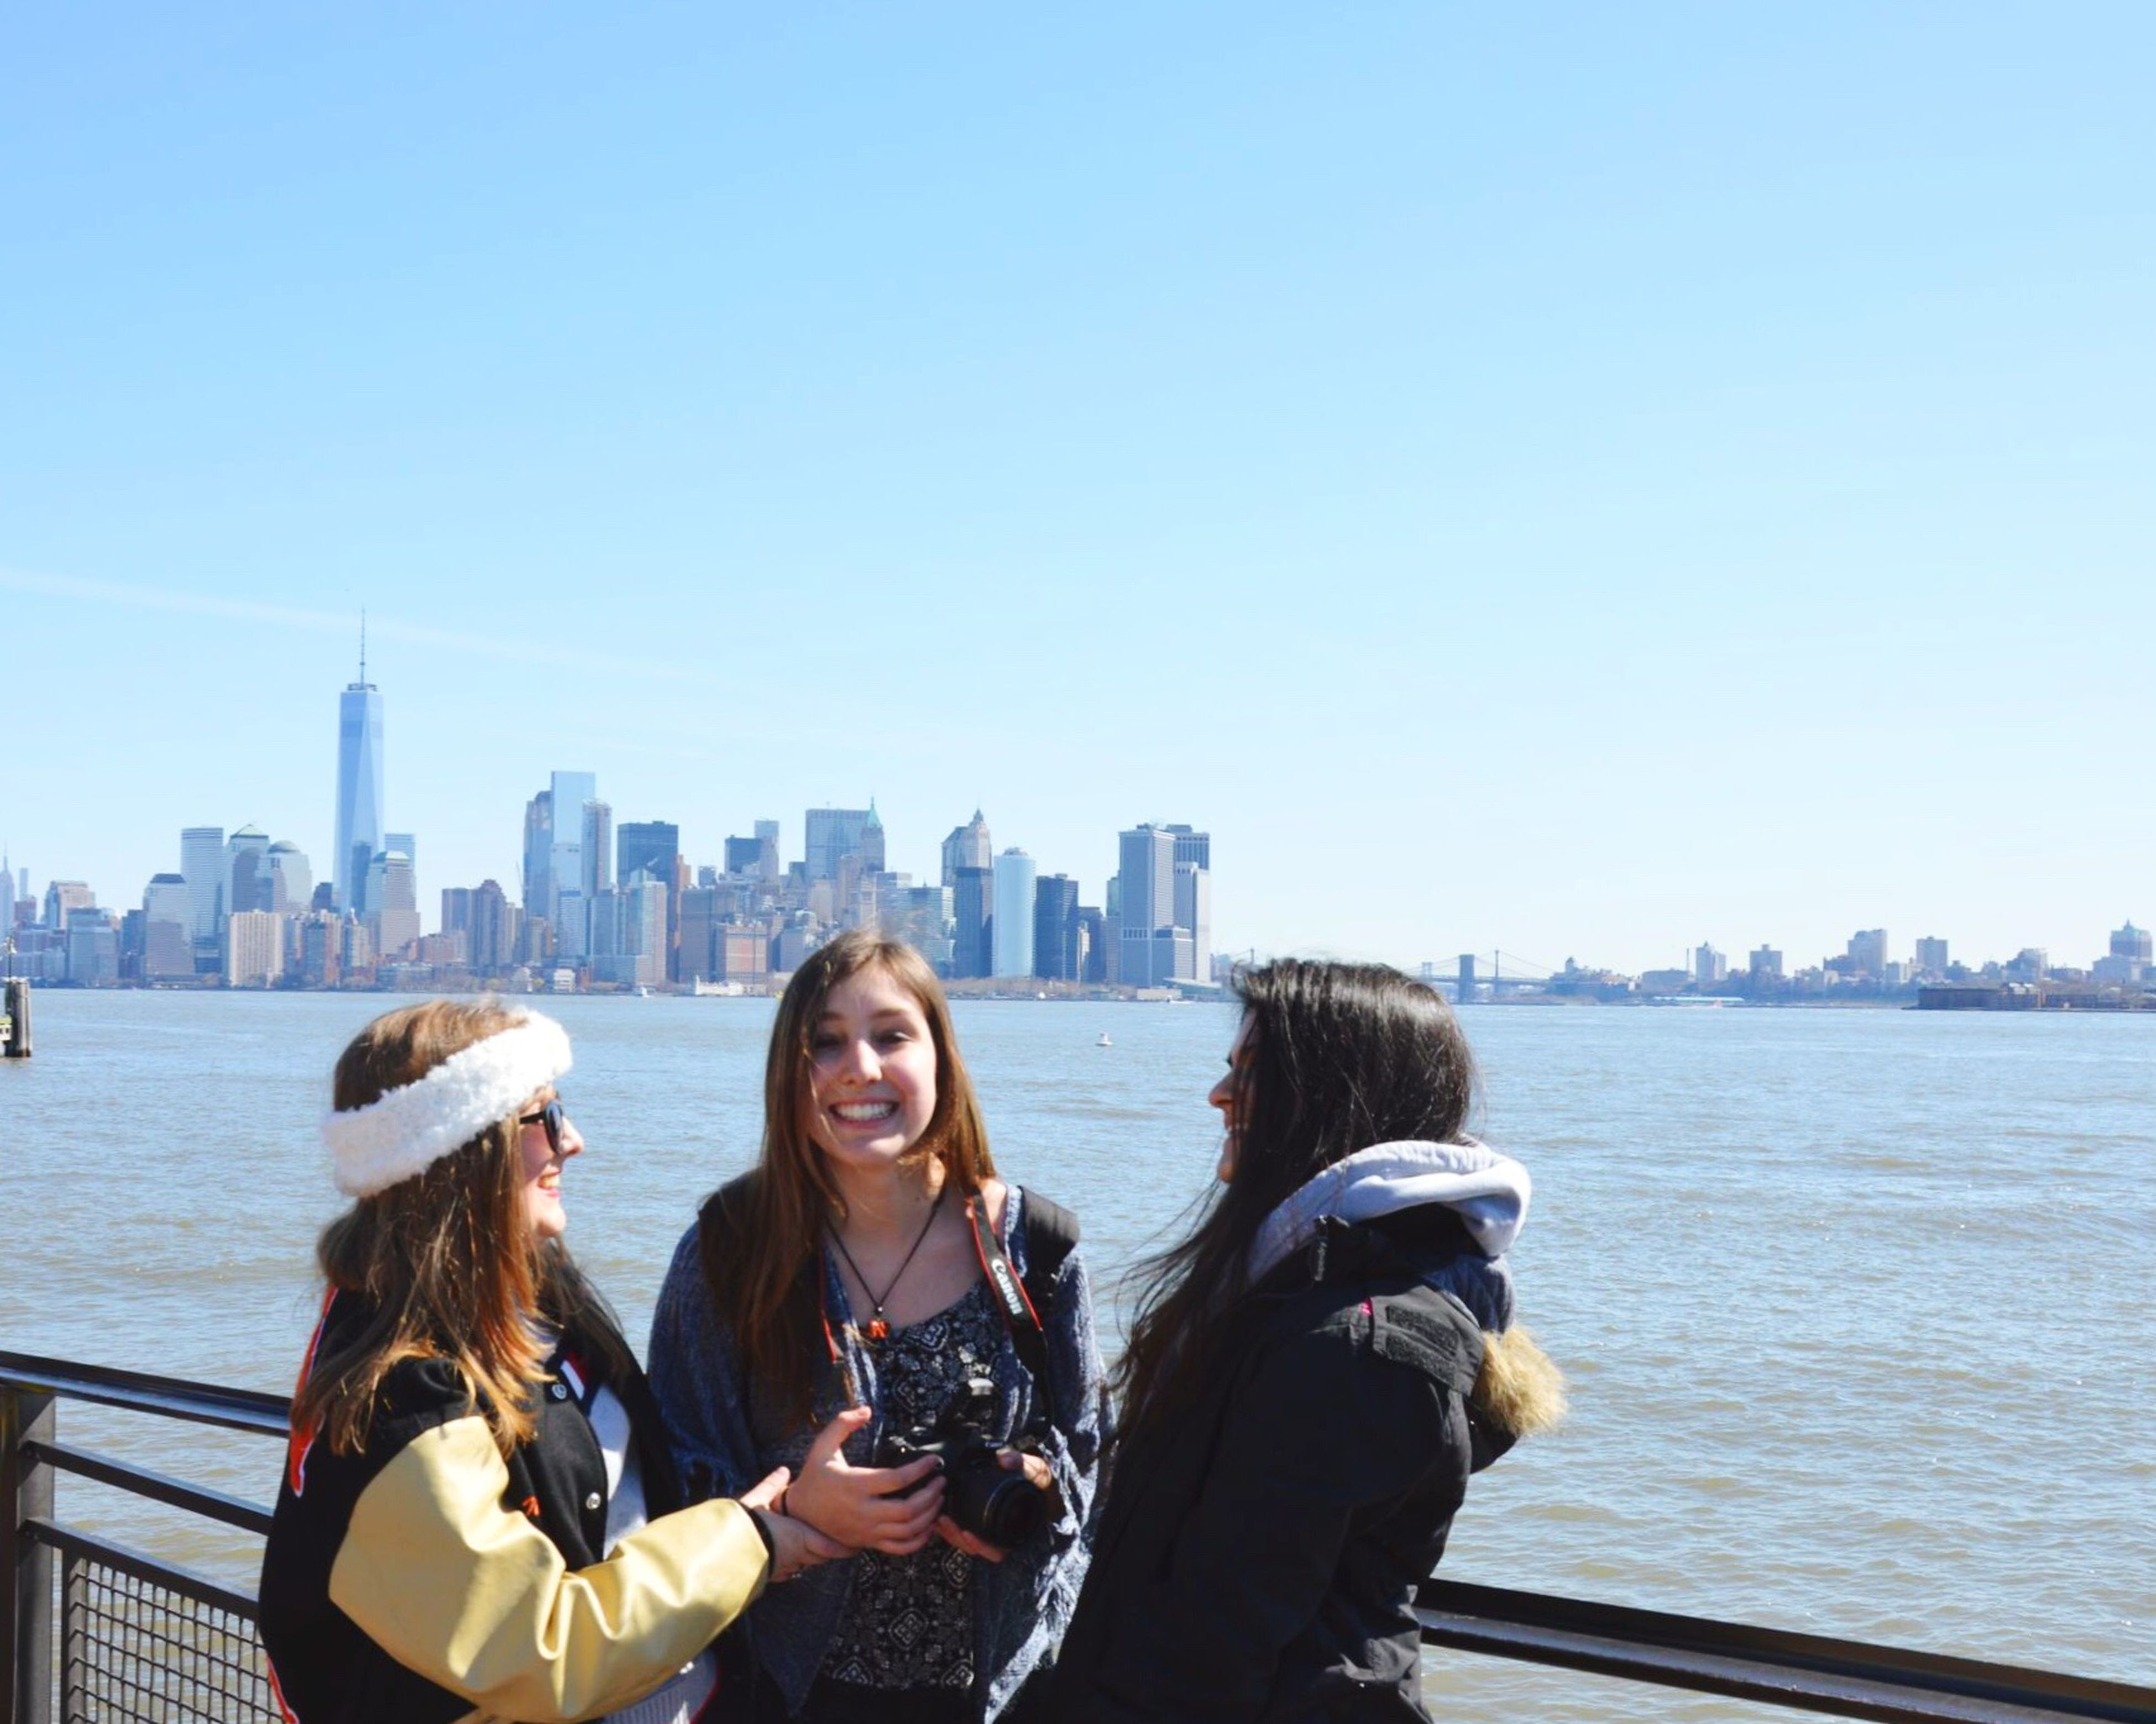 lifestyles, city, clear sky, leisure activity, water, cityscape, copy space, architecture, young adult, building exterior, built structure, sitting, sea, skyscraper, urban skyline, waist up, person, young women